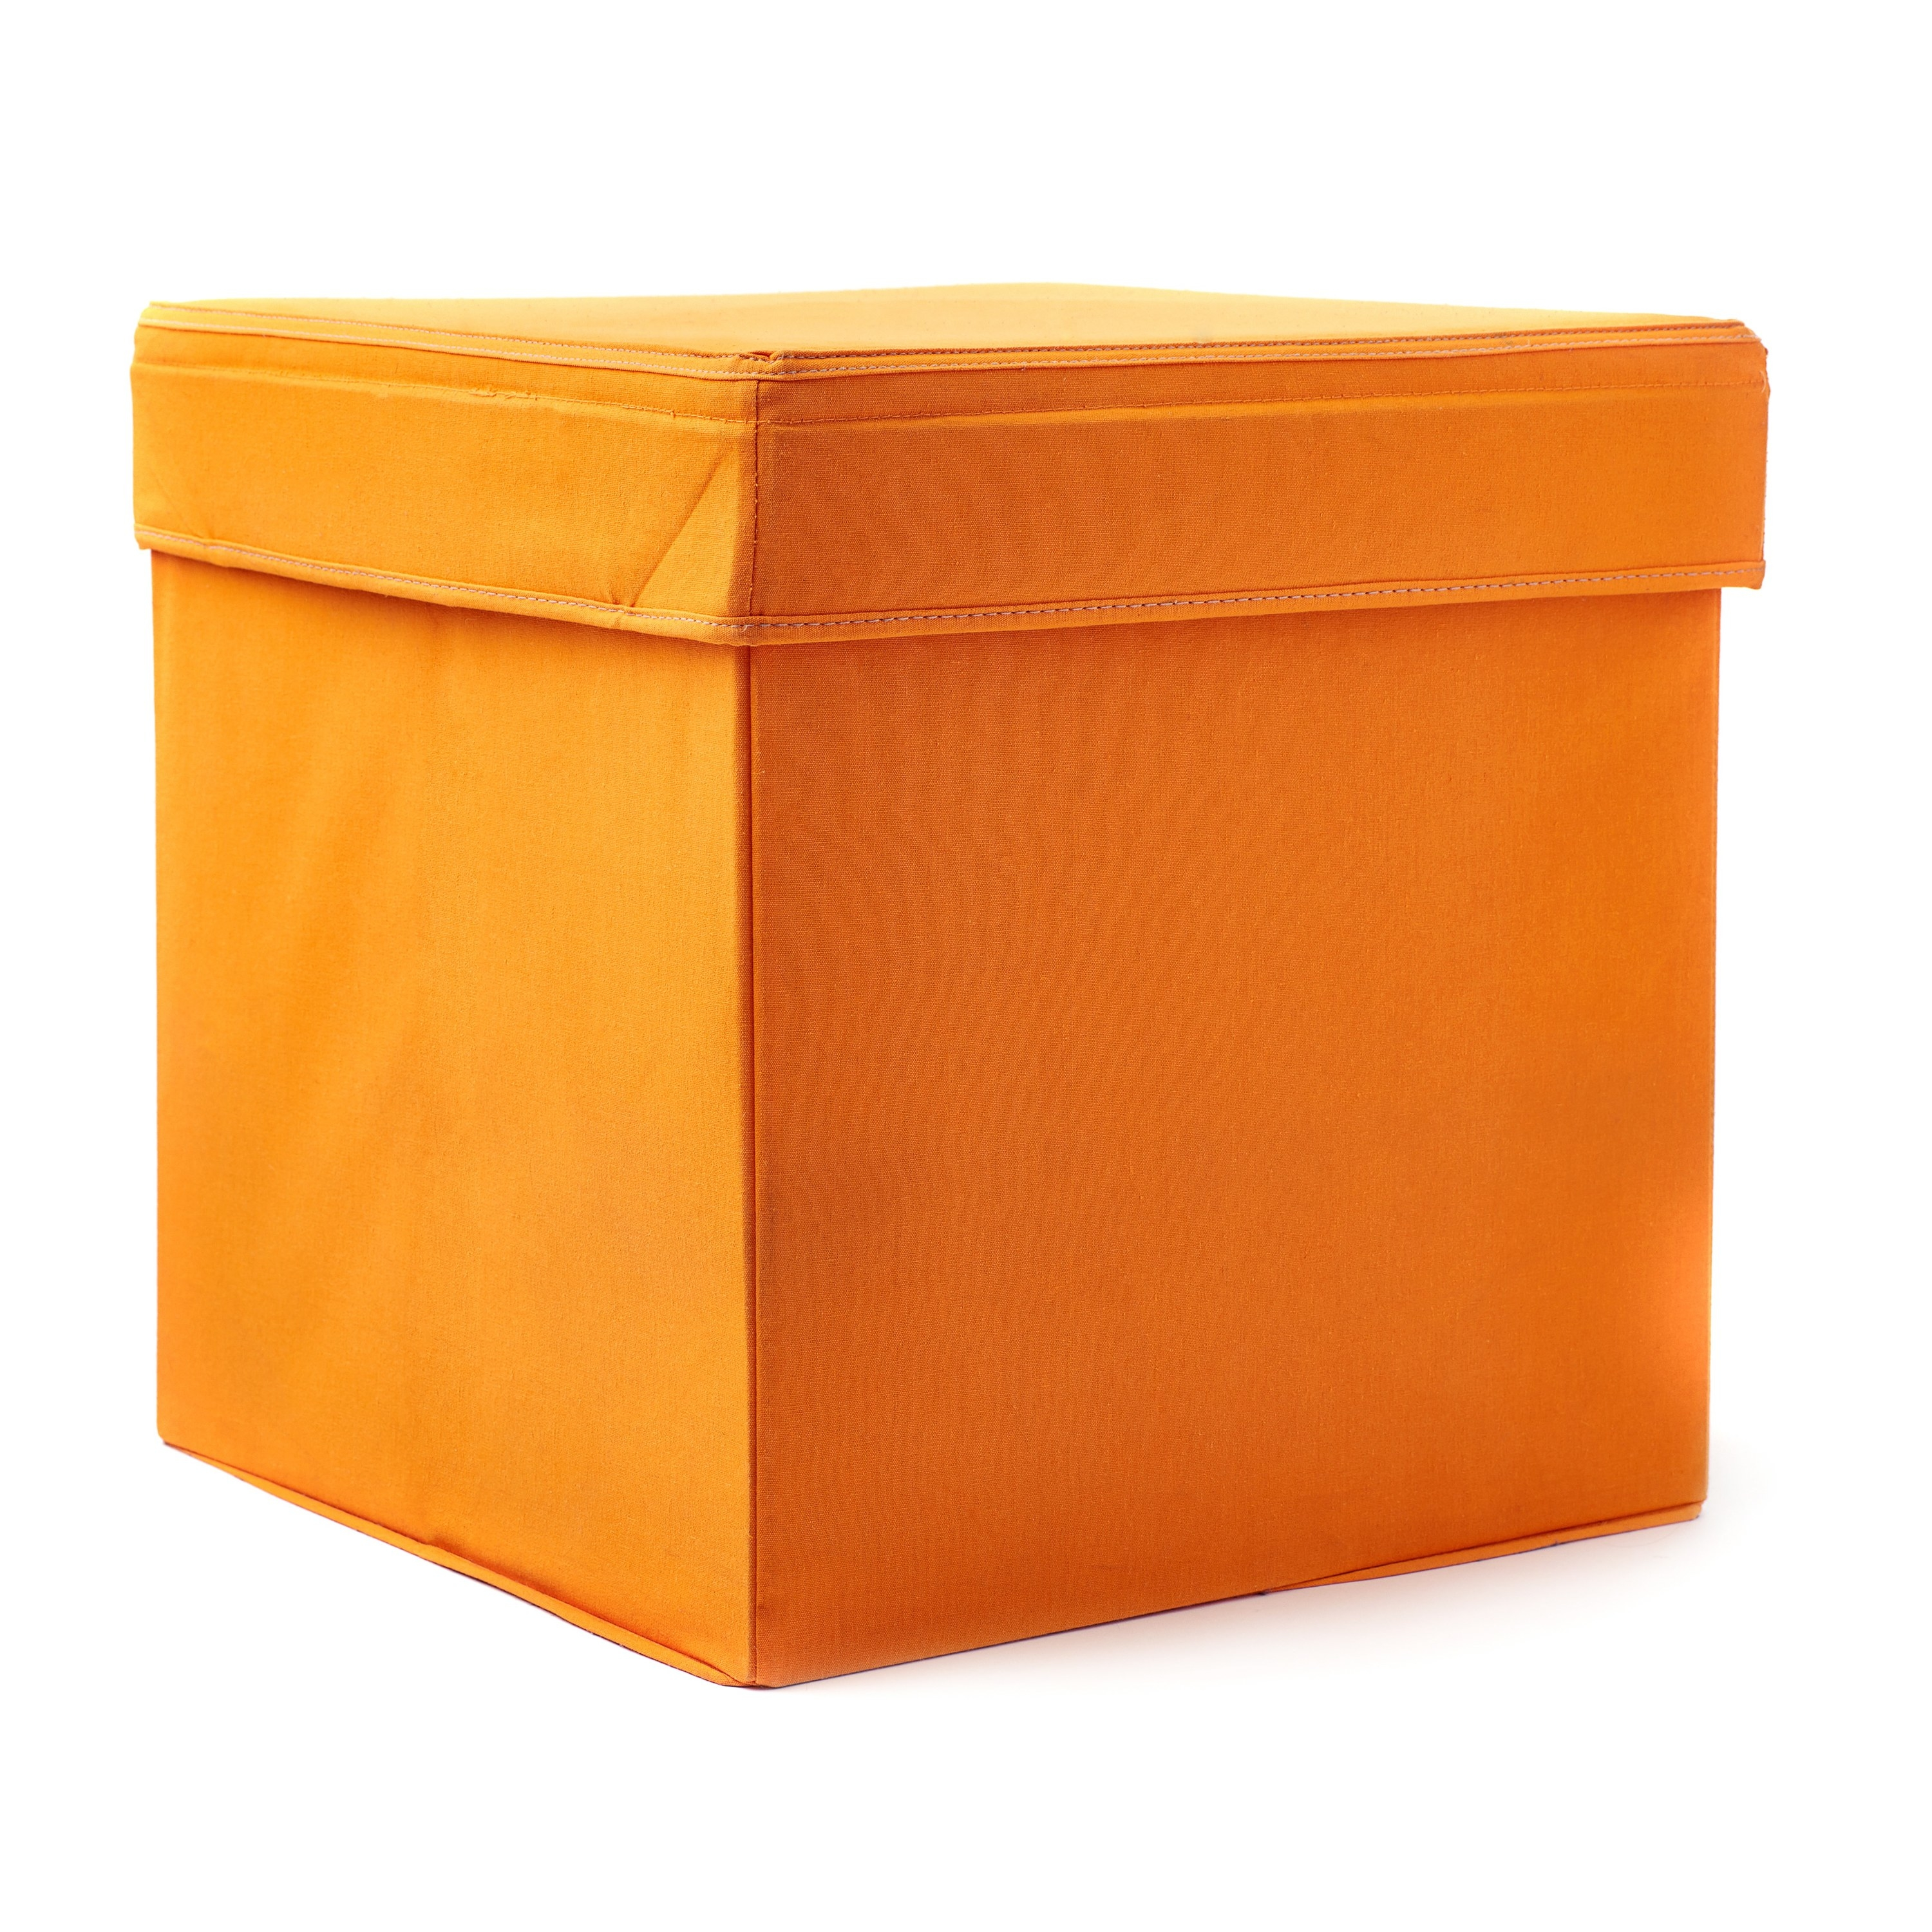 Photo of an orange seating cube against a white backdrop